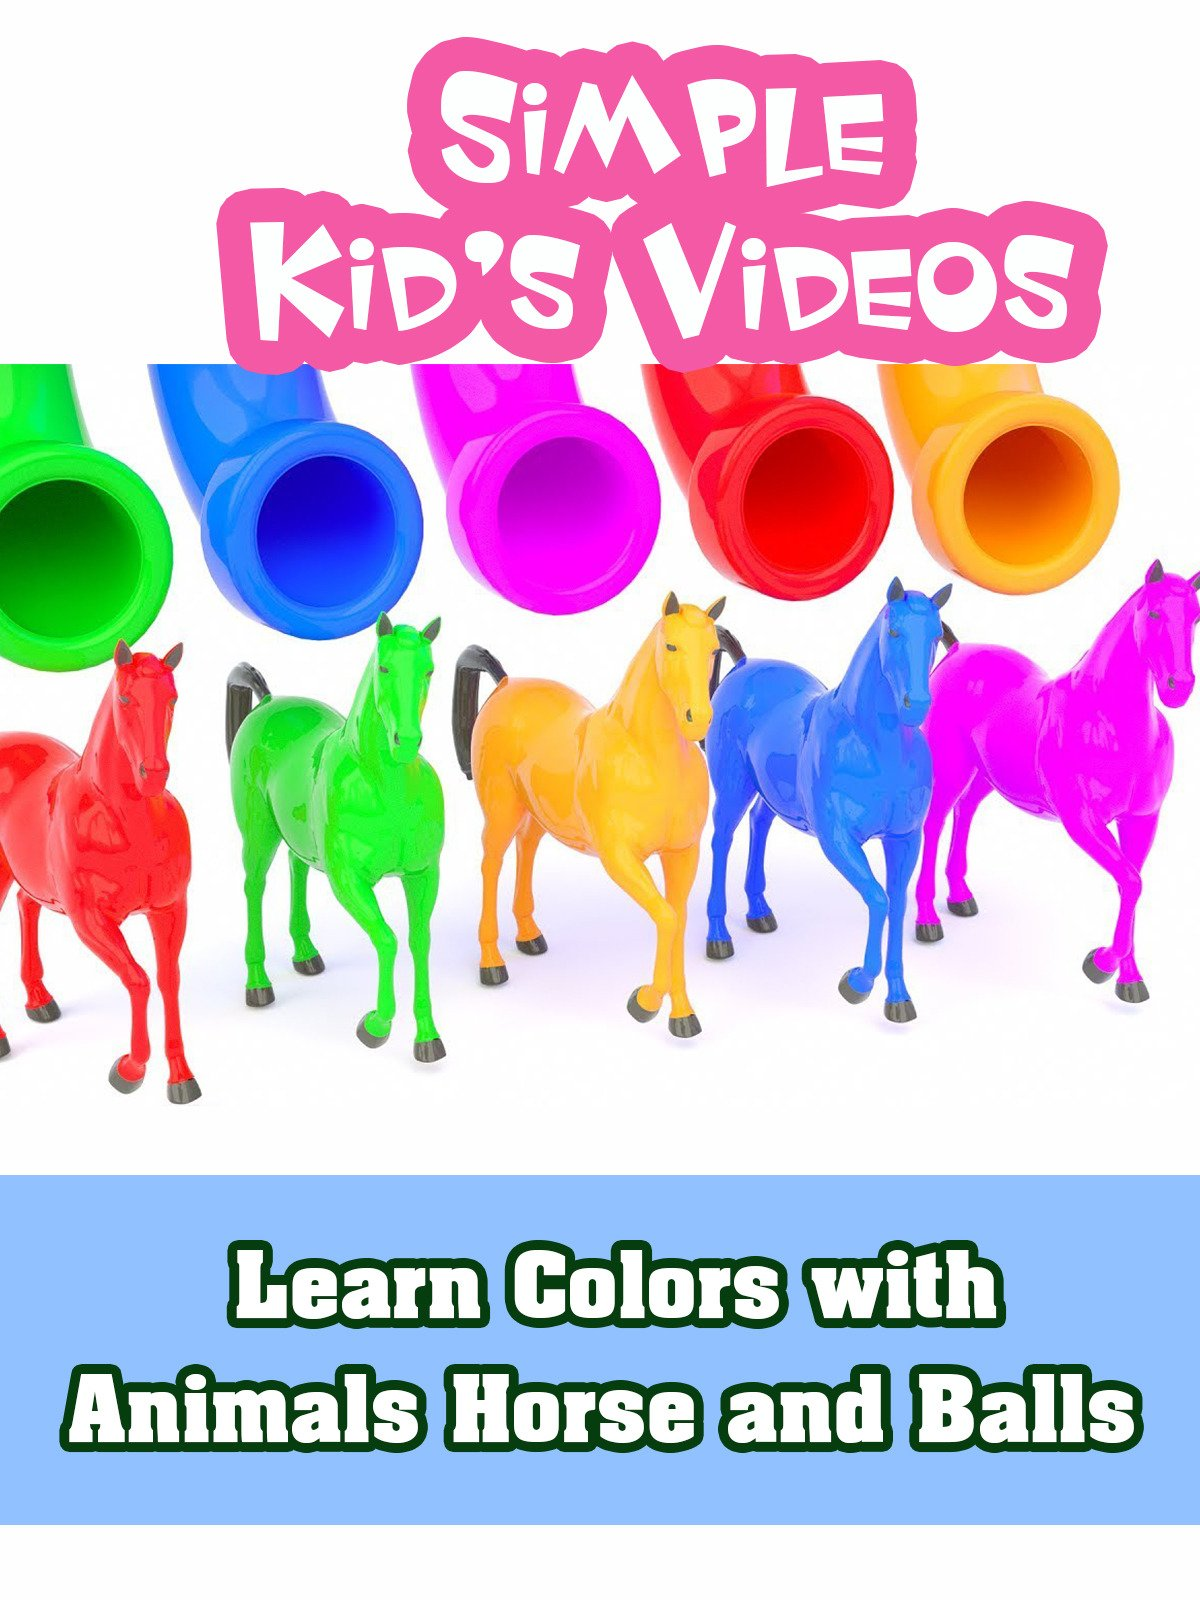 Learn Colors with Animals Horse and Balls